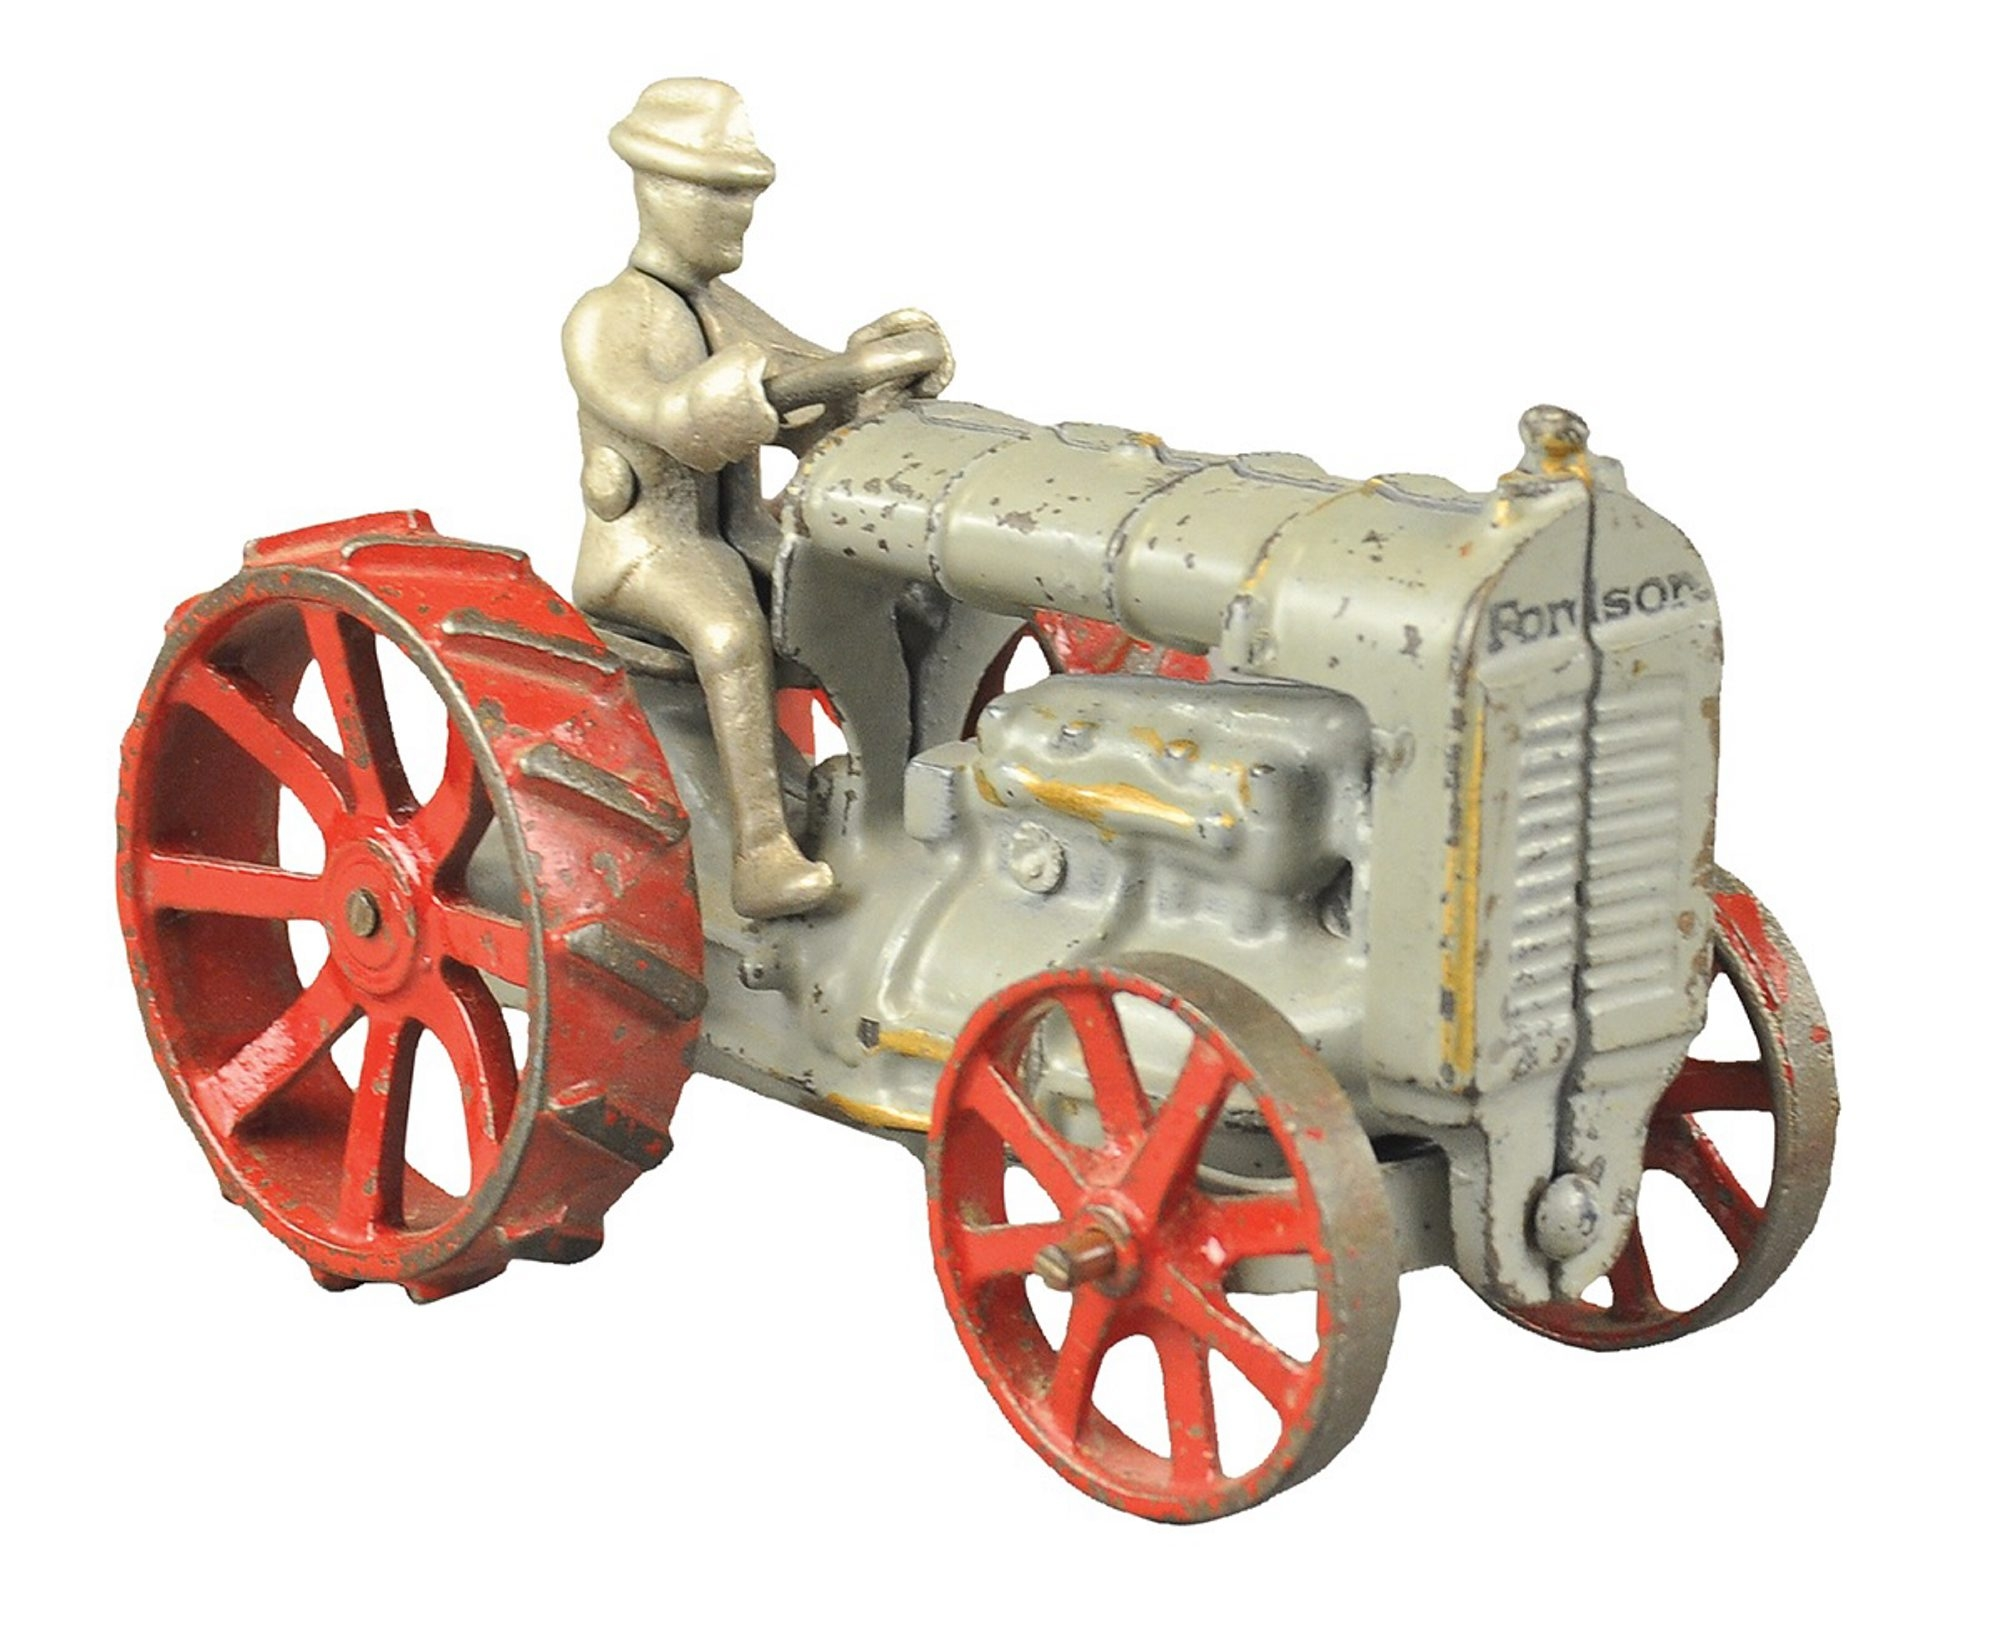 Ford Motor Company made the large Fordson Tractor in the early 1930s, when this toy was made. It sold at Bertoia's Auction in Vineland, N.J., for $185.